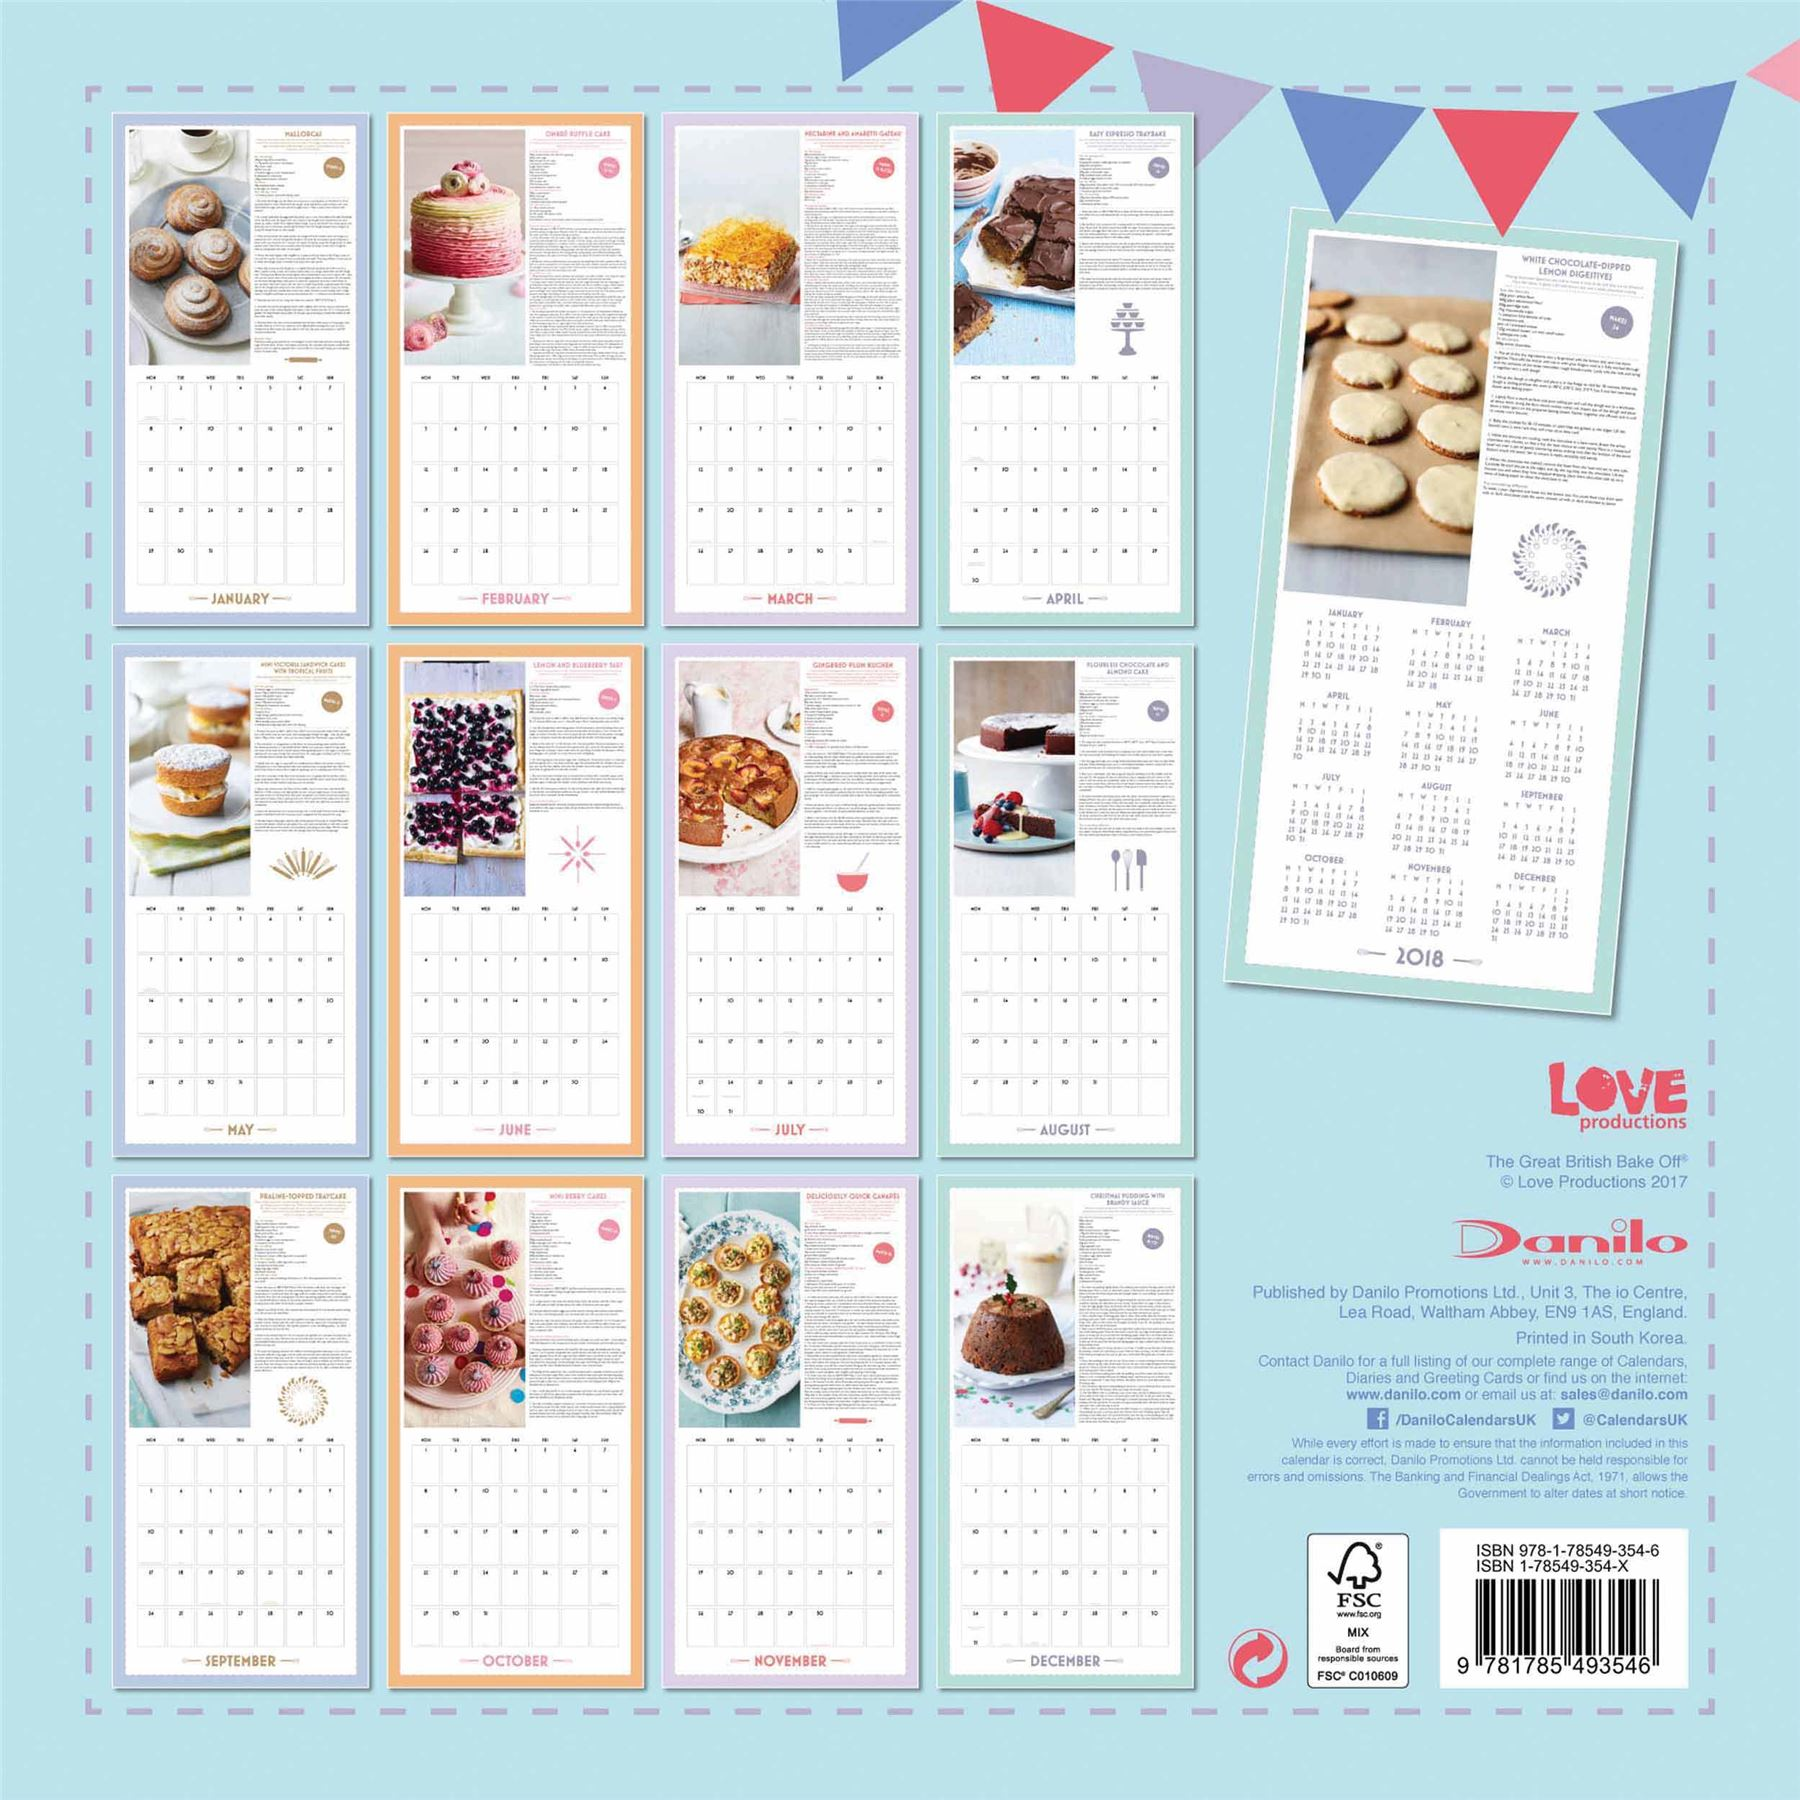 Official 2018 The Great British Bake Off Wall Calendar